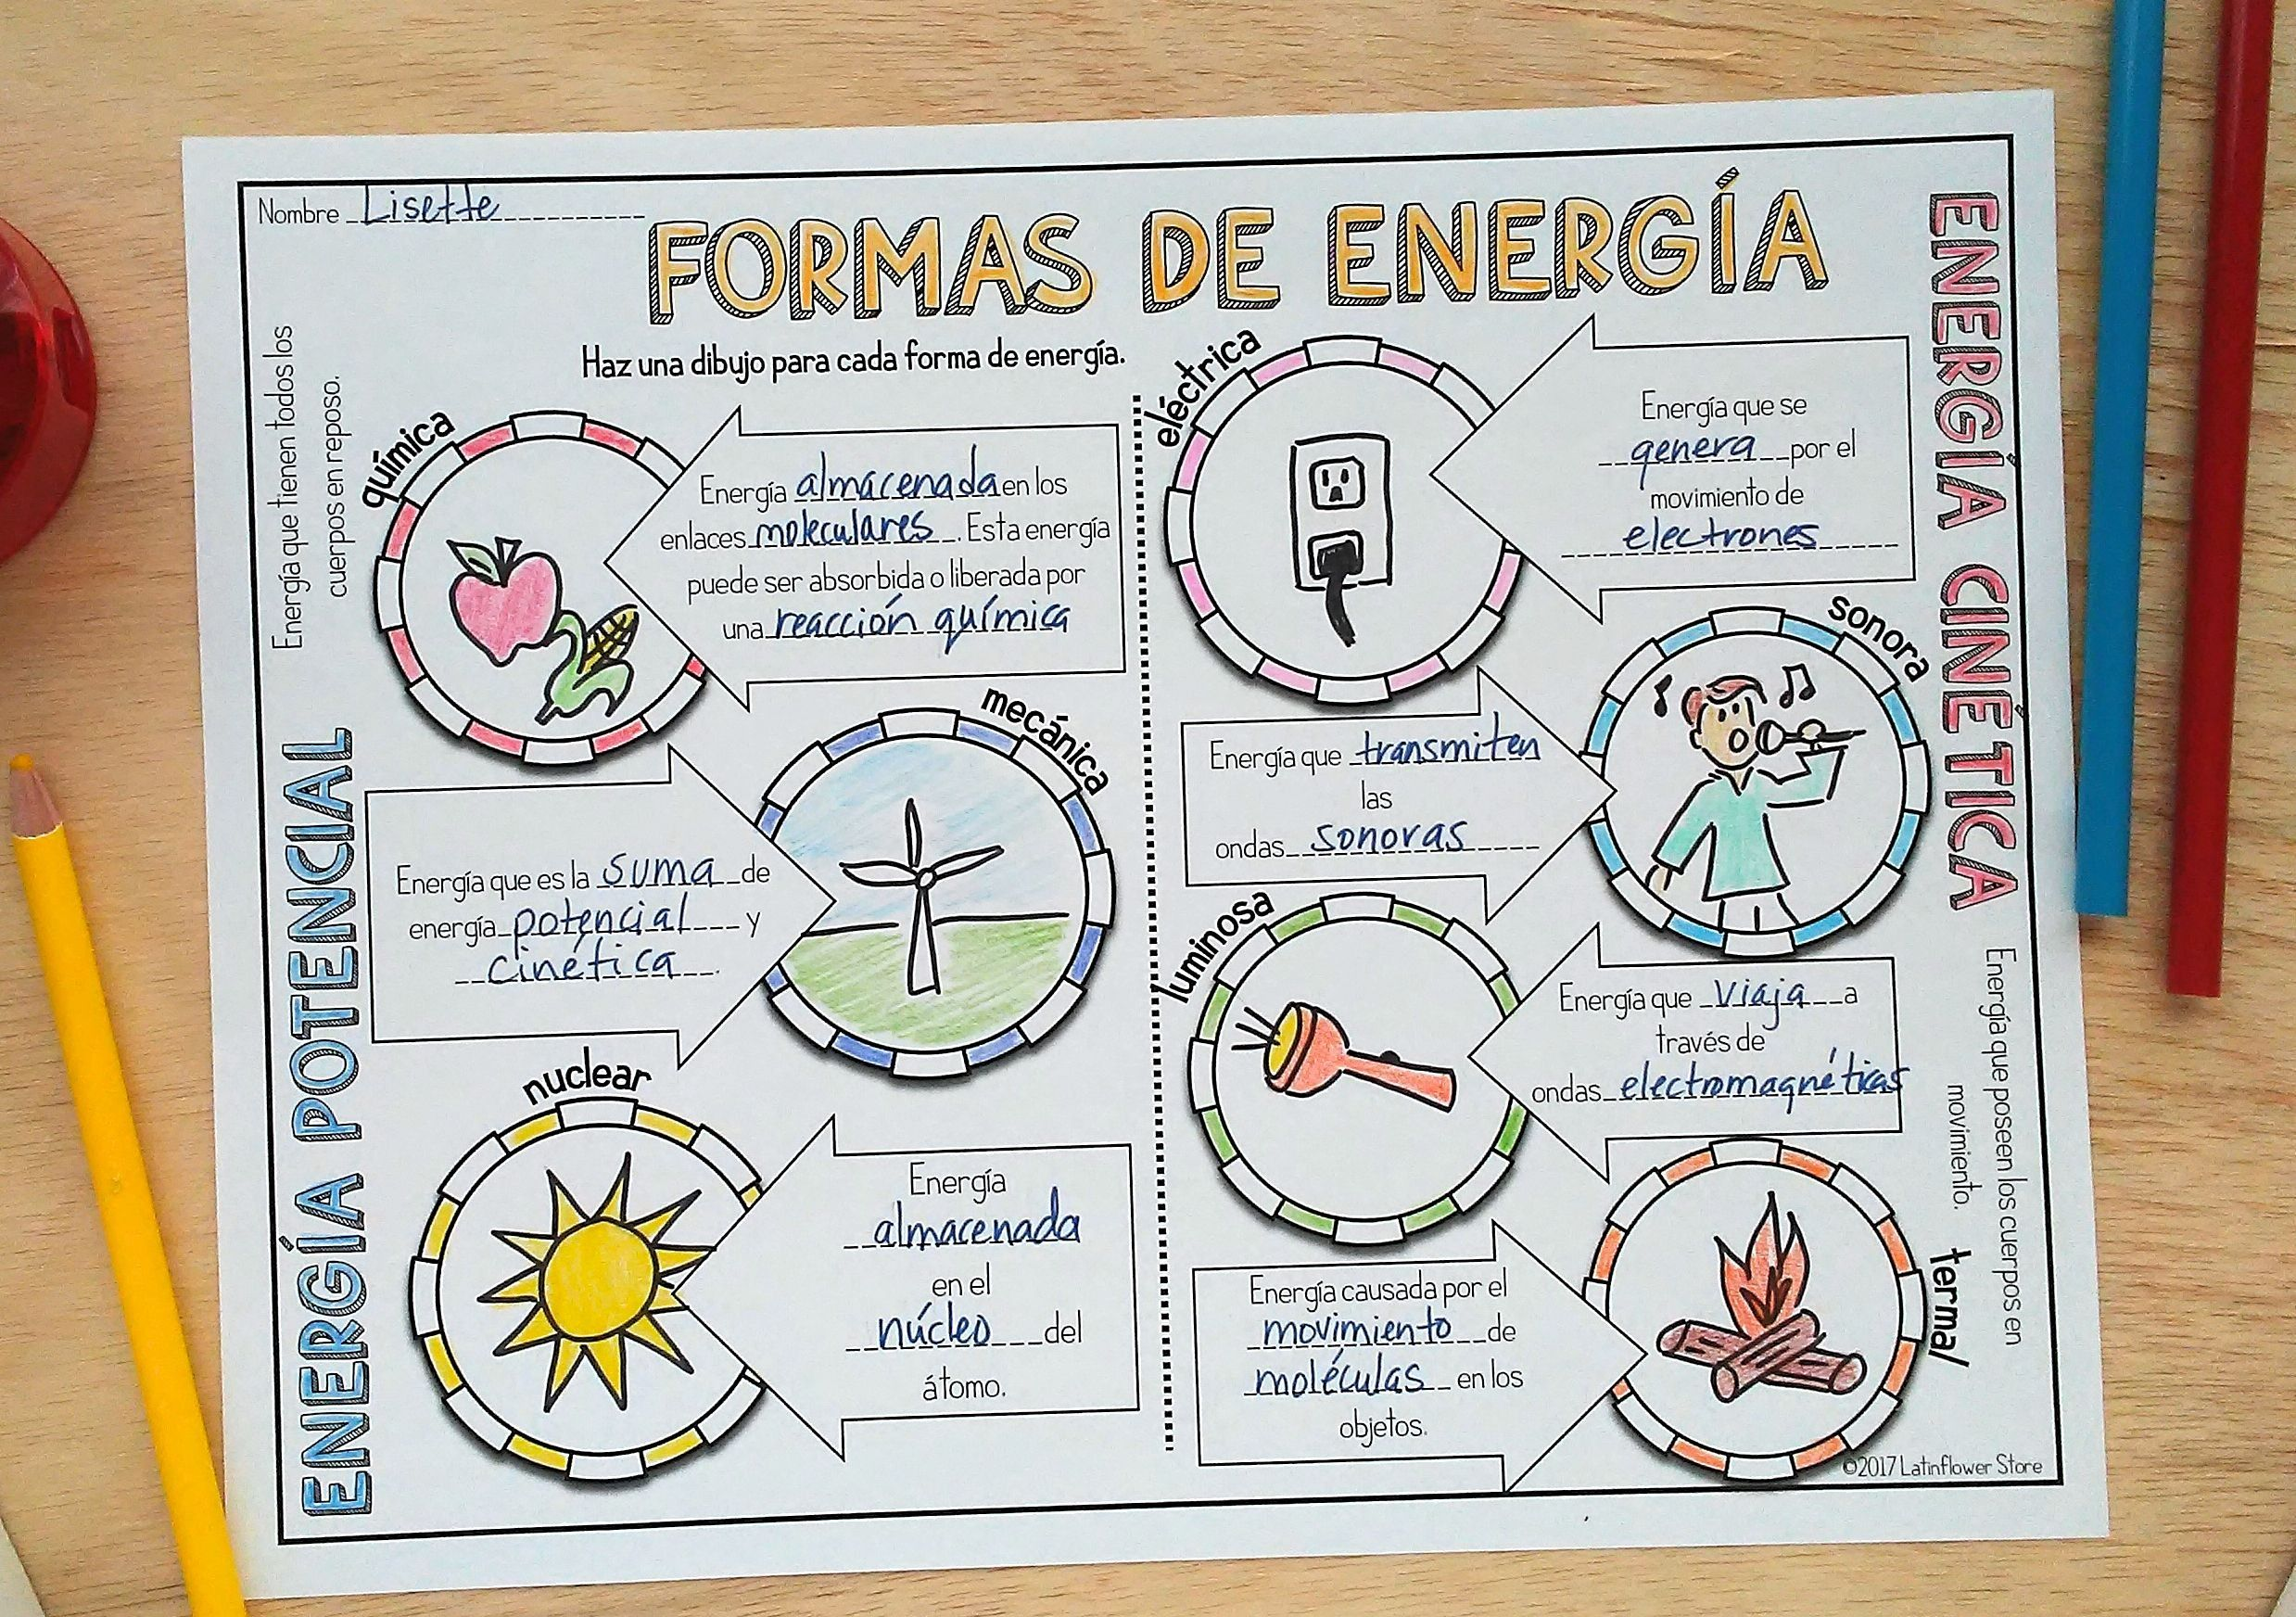 Formas De Energía Notas Visuales Mind Map Design School Notebooks Bullet Journal Ideas Pages